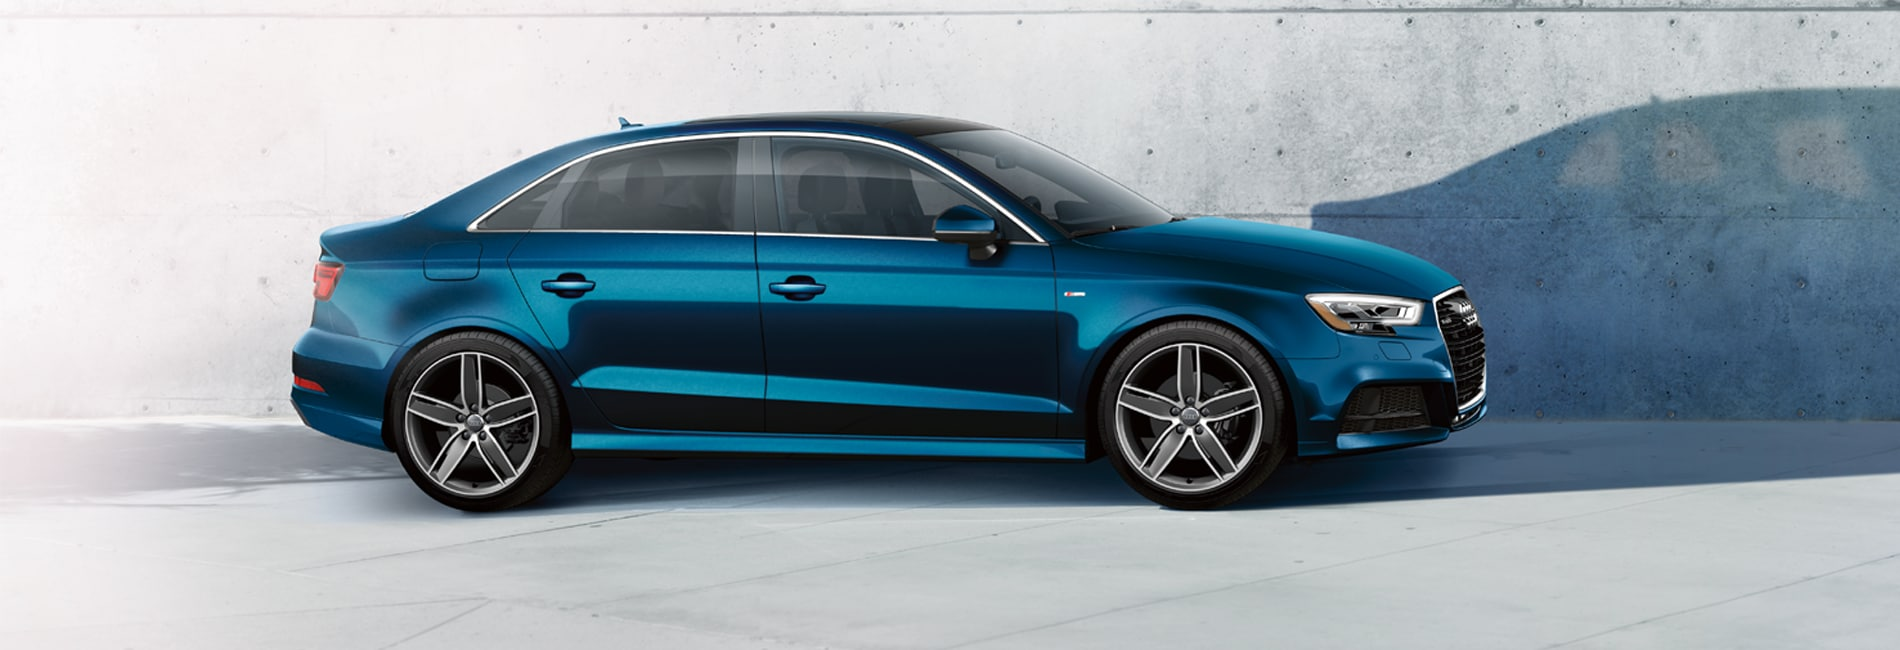 Audi A3 Exterior Vehicle Features